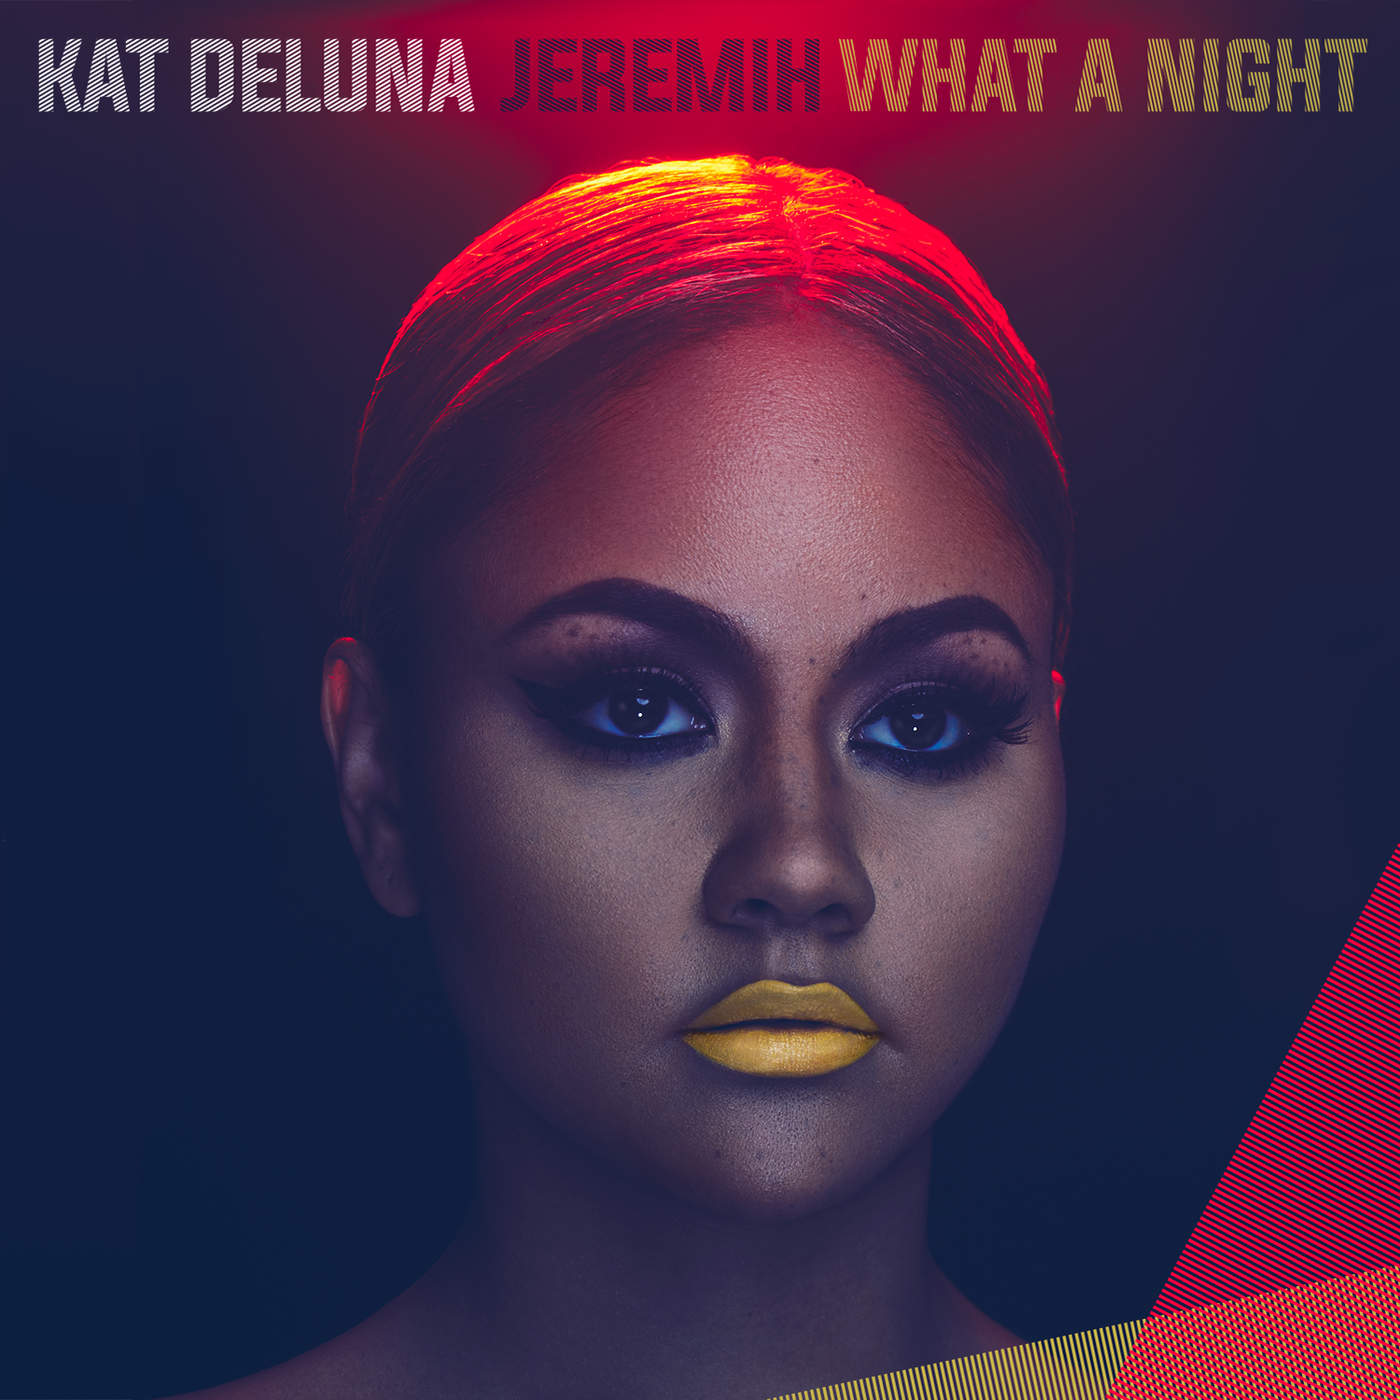 Kat DeLuna - What a Night (feat. Jeremih) - Single Cover